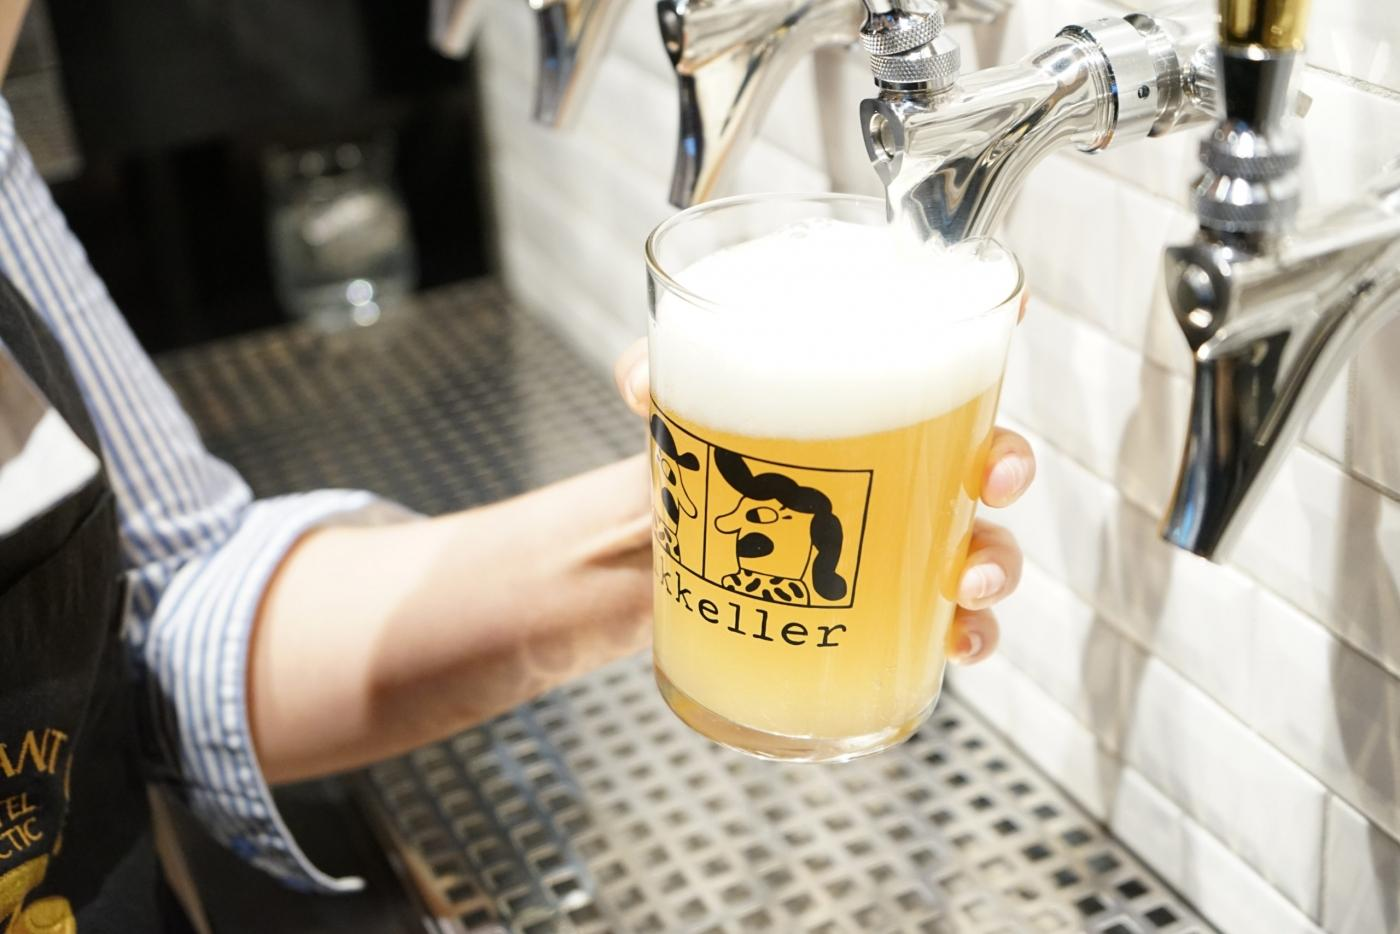 Mikkeller beer on tap at the Brasserie Ulo. Photo by Brasserie Ulo – Hotel Arctic